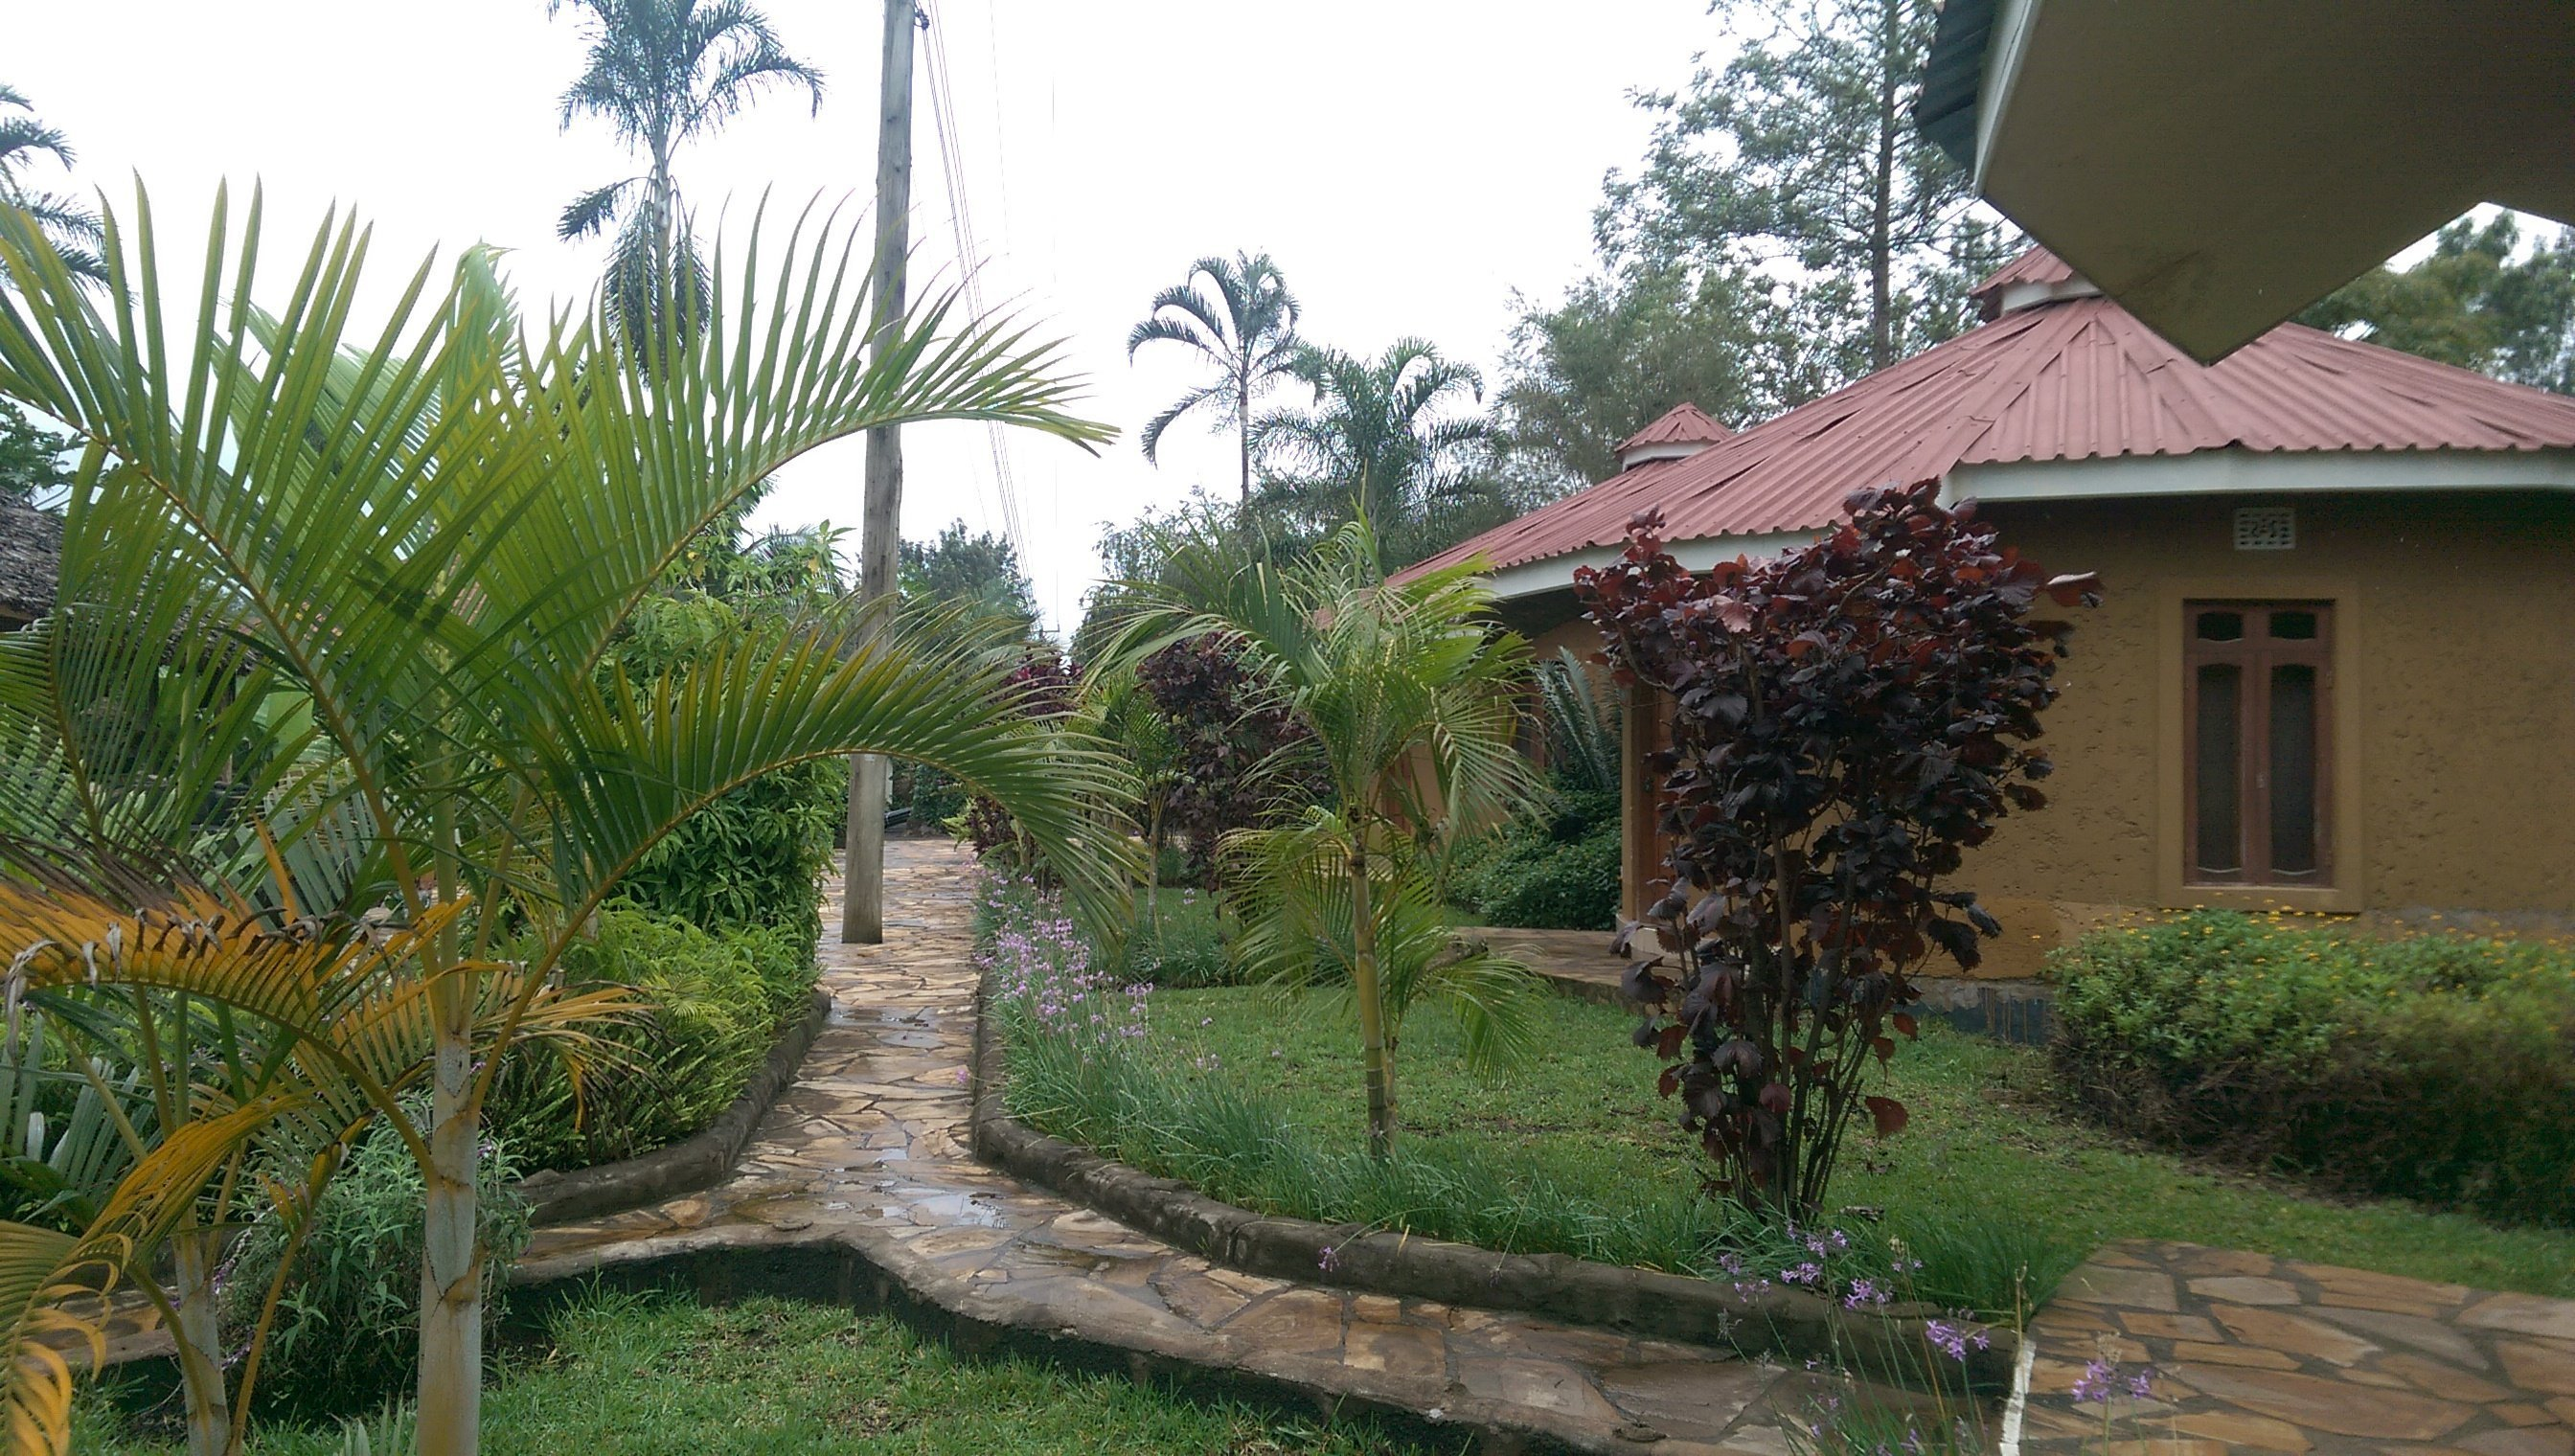 Grounds of Kilimanjaro Eco Lodge